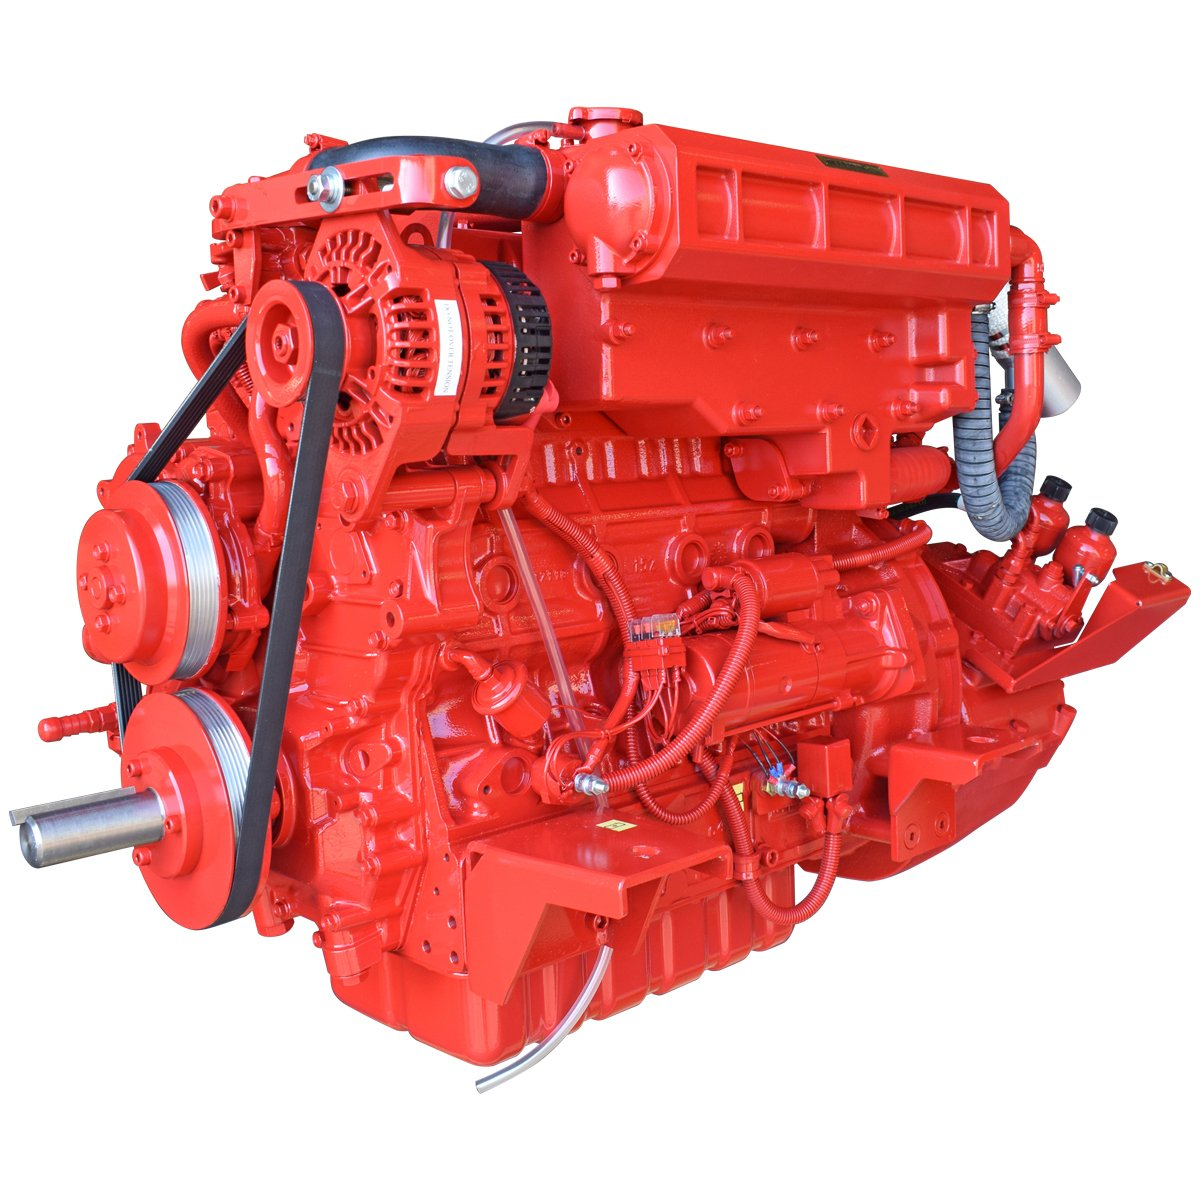 Beta Marine USA - marine diesel propulsion engines - Beta 90 heat exchanger engine